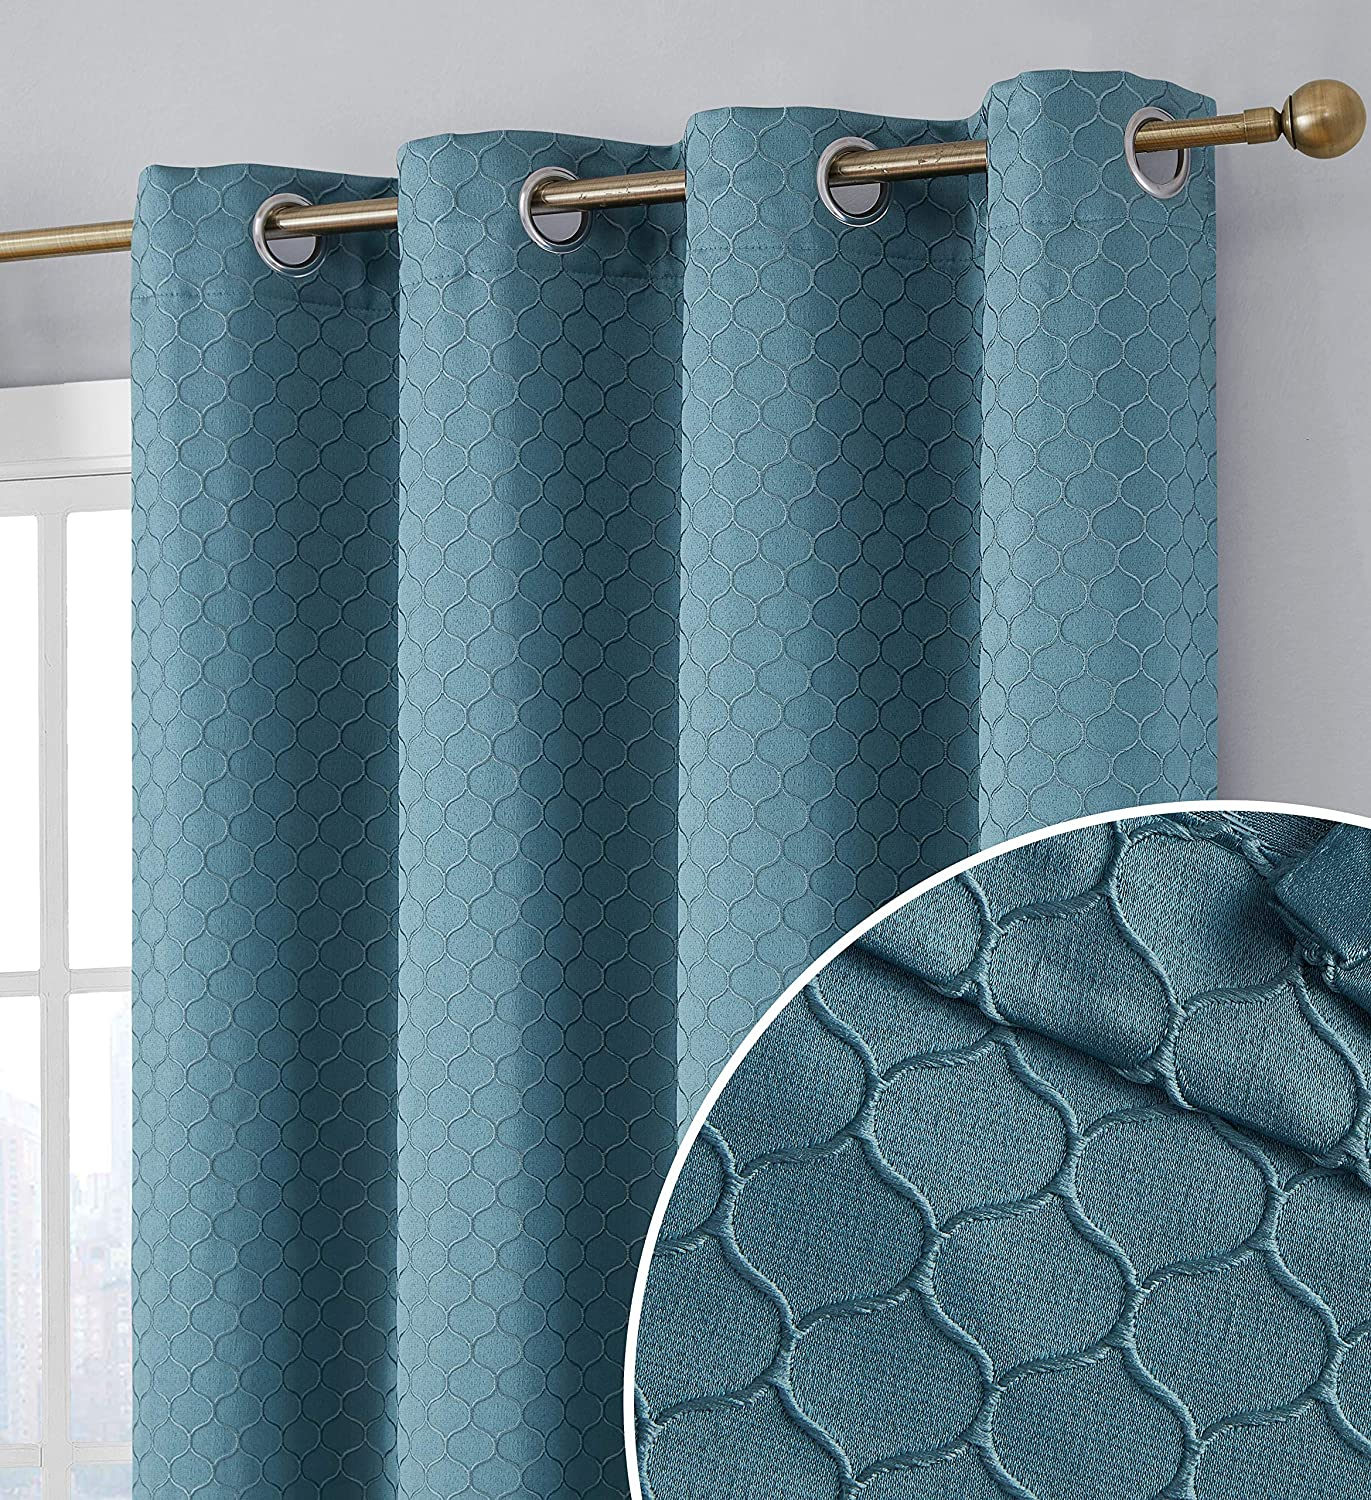 HLC.ME Siena 100% Extreme Blackout Thermal Insulated Decorative Pattern Window Curtain Grommet Panels for Living Room & Bedroom - Energy Savings & Soundproof, Set of 2 (50 x 63 inch Length, Teal Blue)